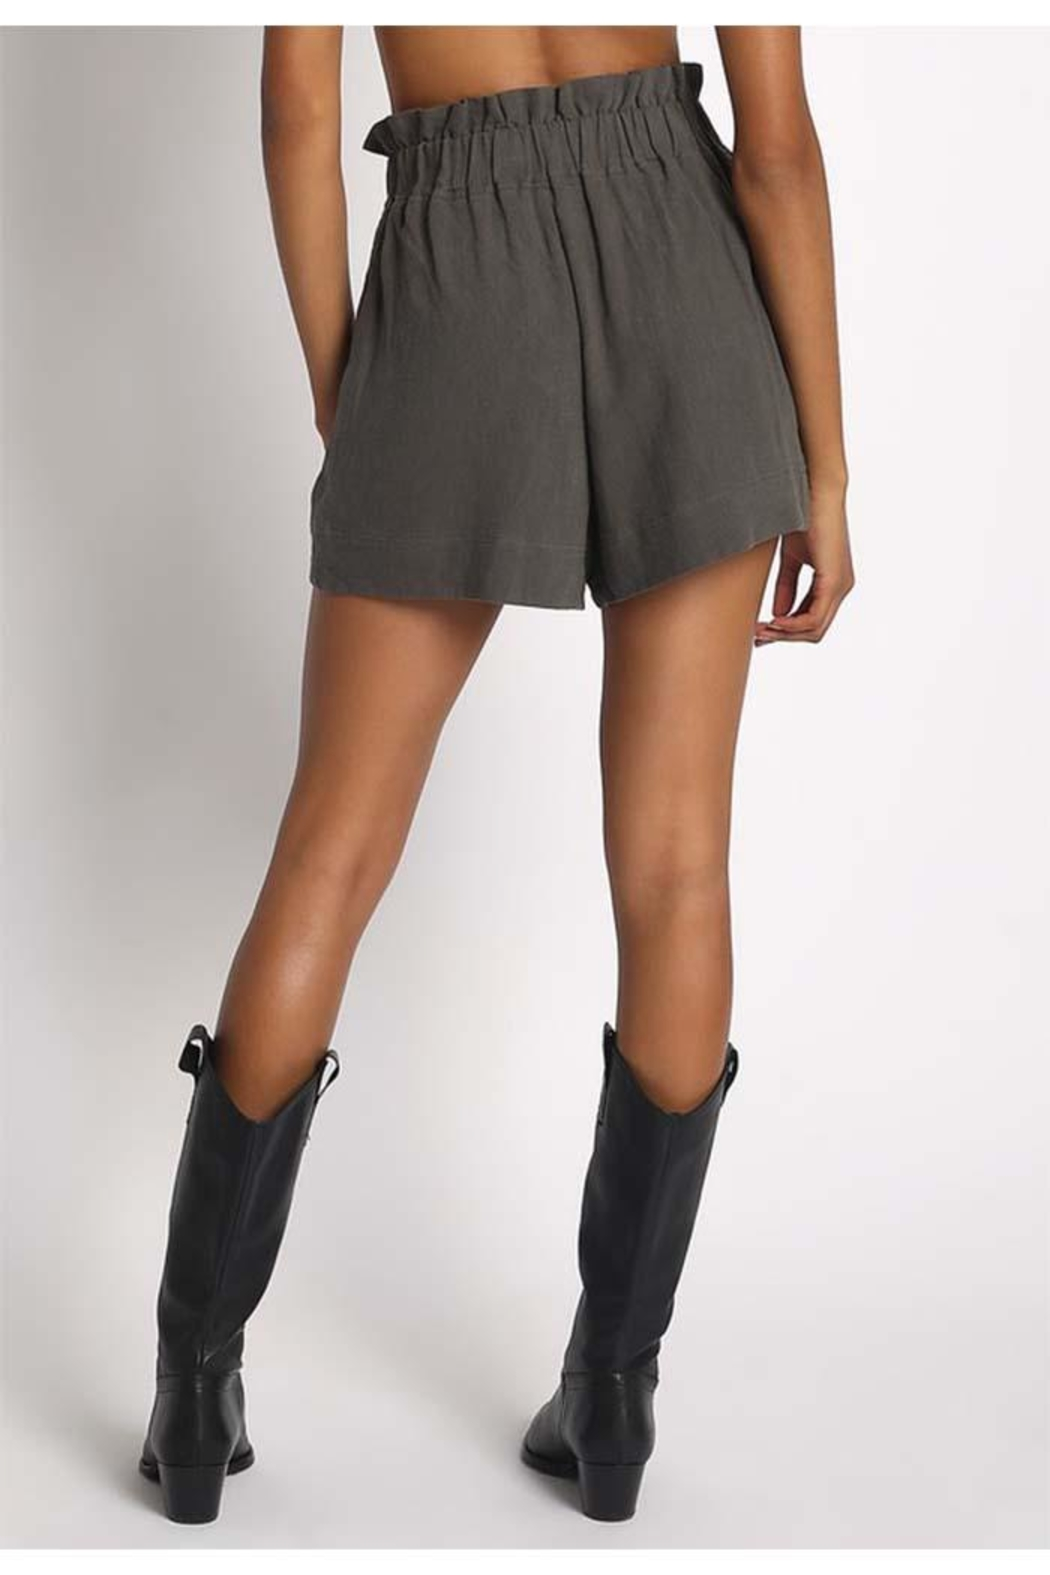 Sans Souci Olive Paperbag Shorts - Side Cropped Image